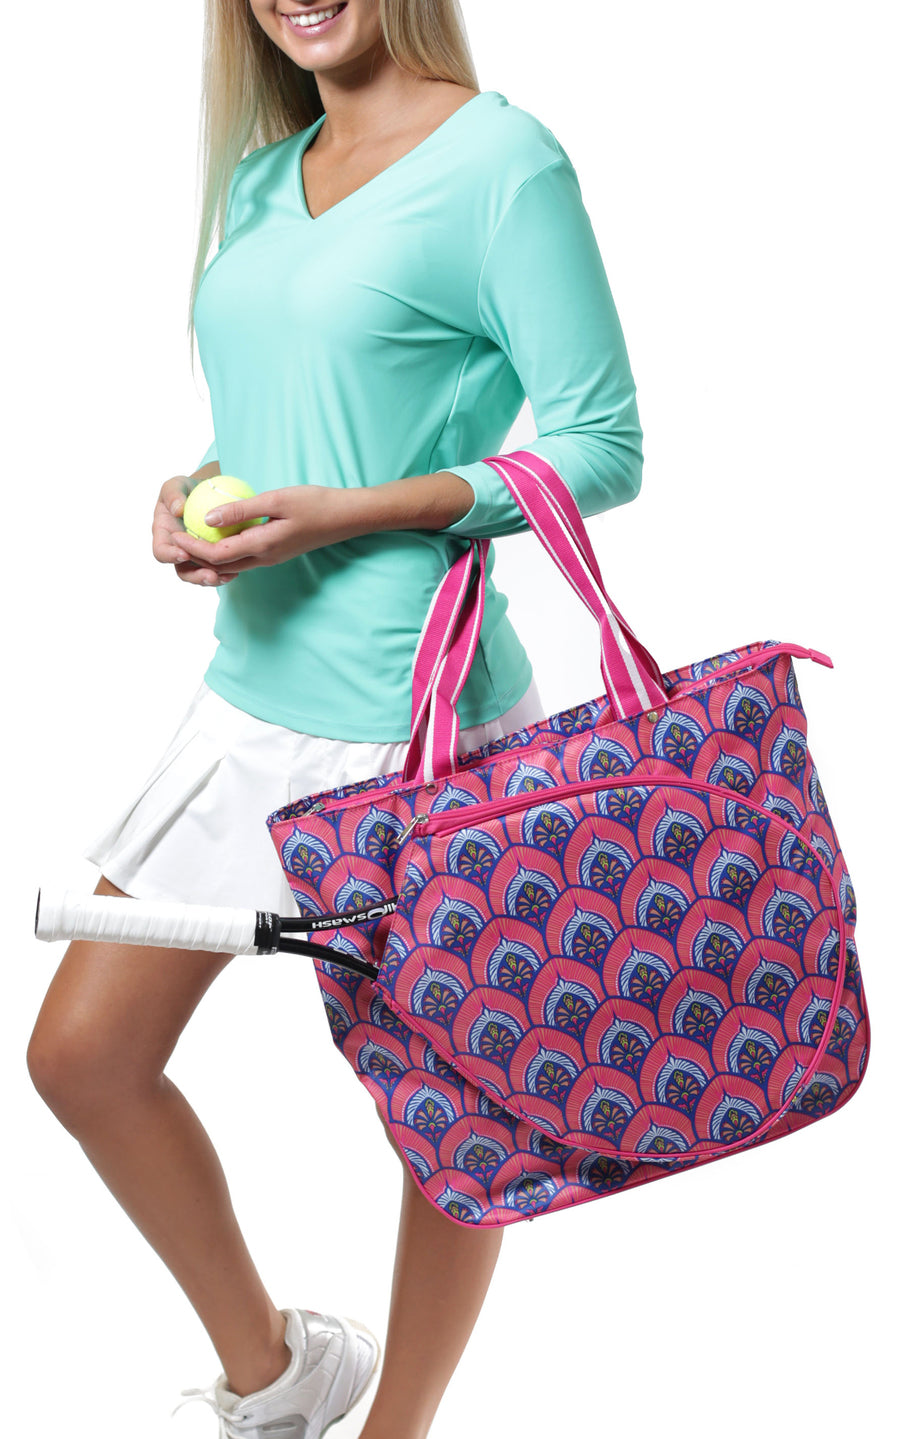 Bali Blooms Tennis Tote - FINAL SALE